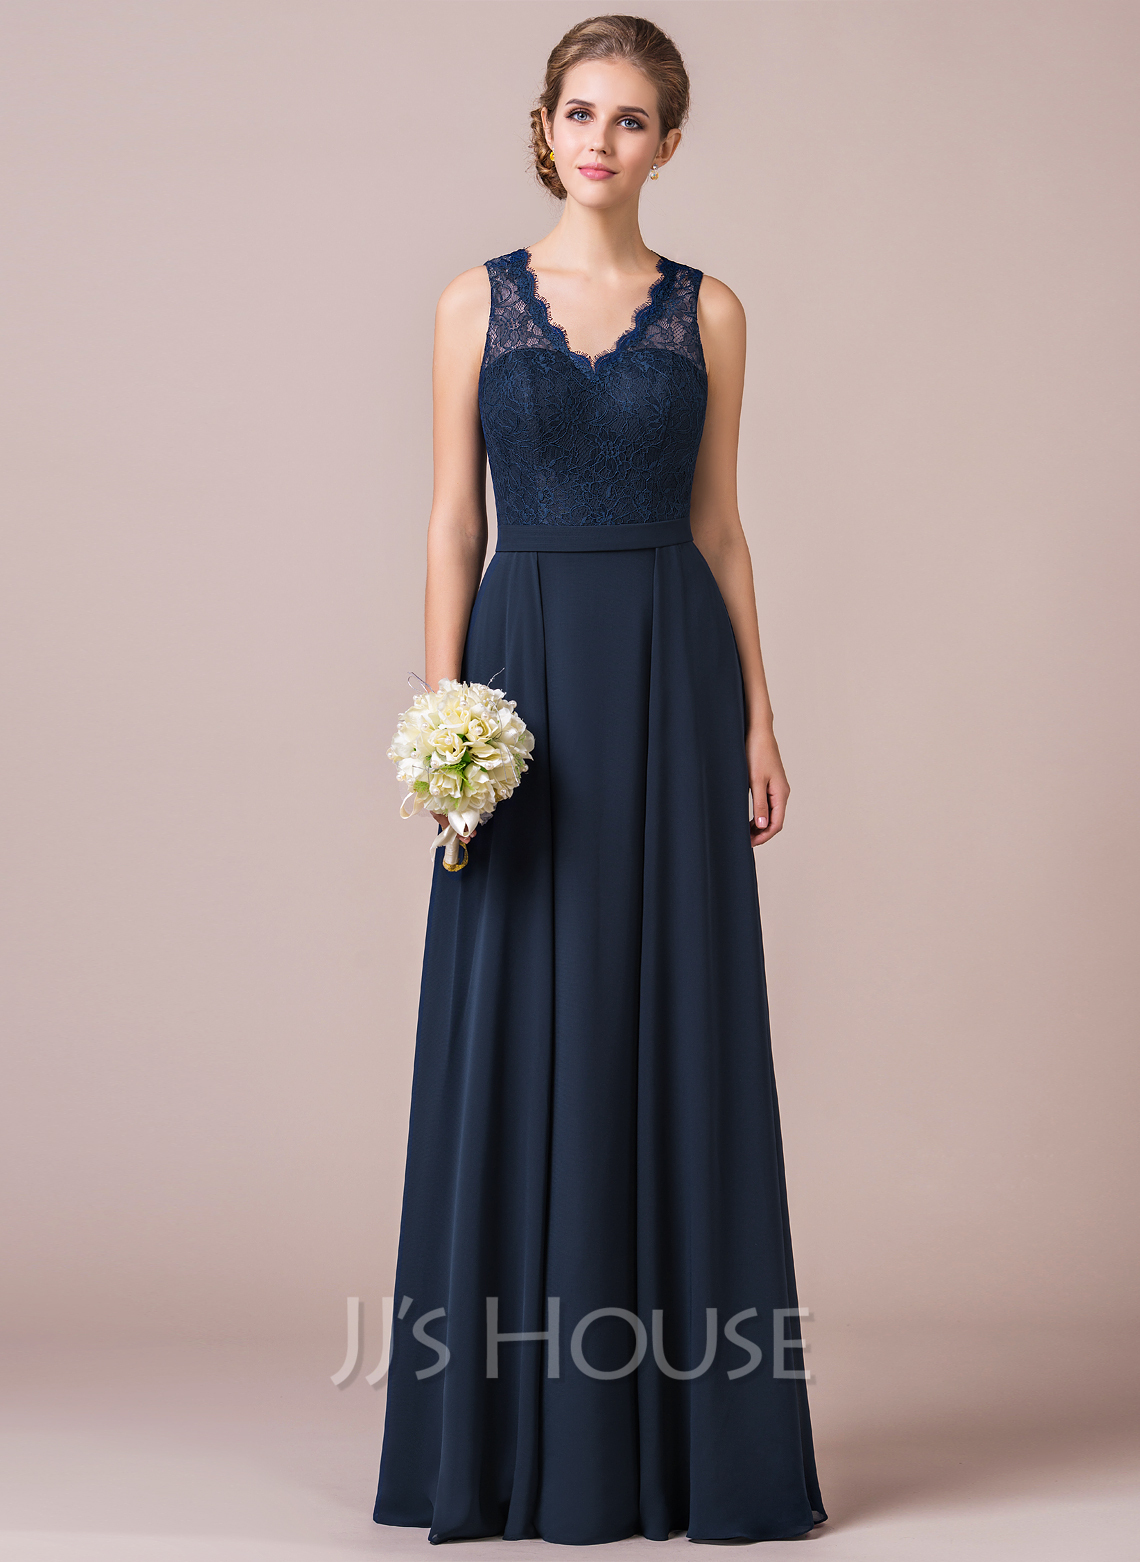 A lineprincess v neck floor length chiffon lace bridesmaid dress a lineprincess v neck floor length chiffon lace bridesmaid dress loading zoom ombrellifo Images